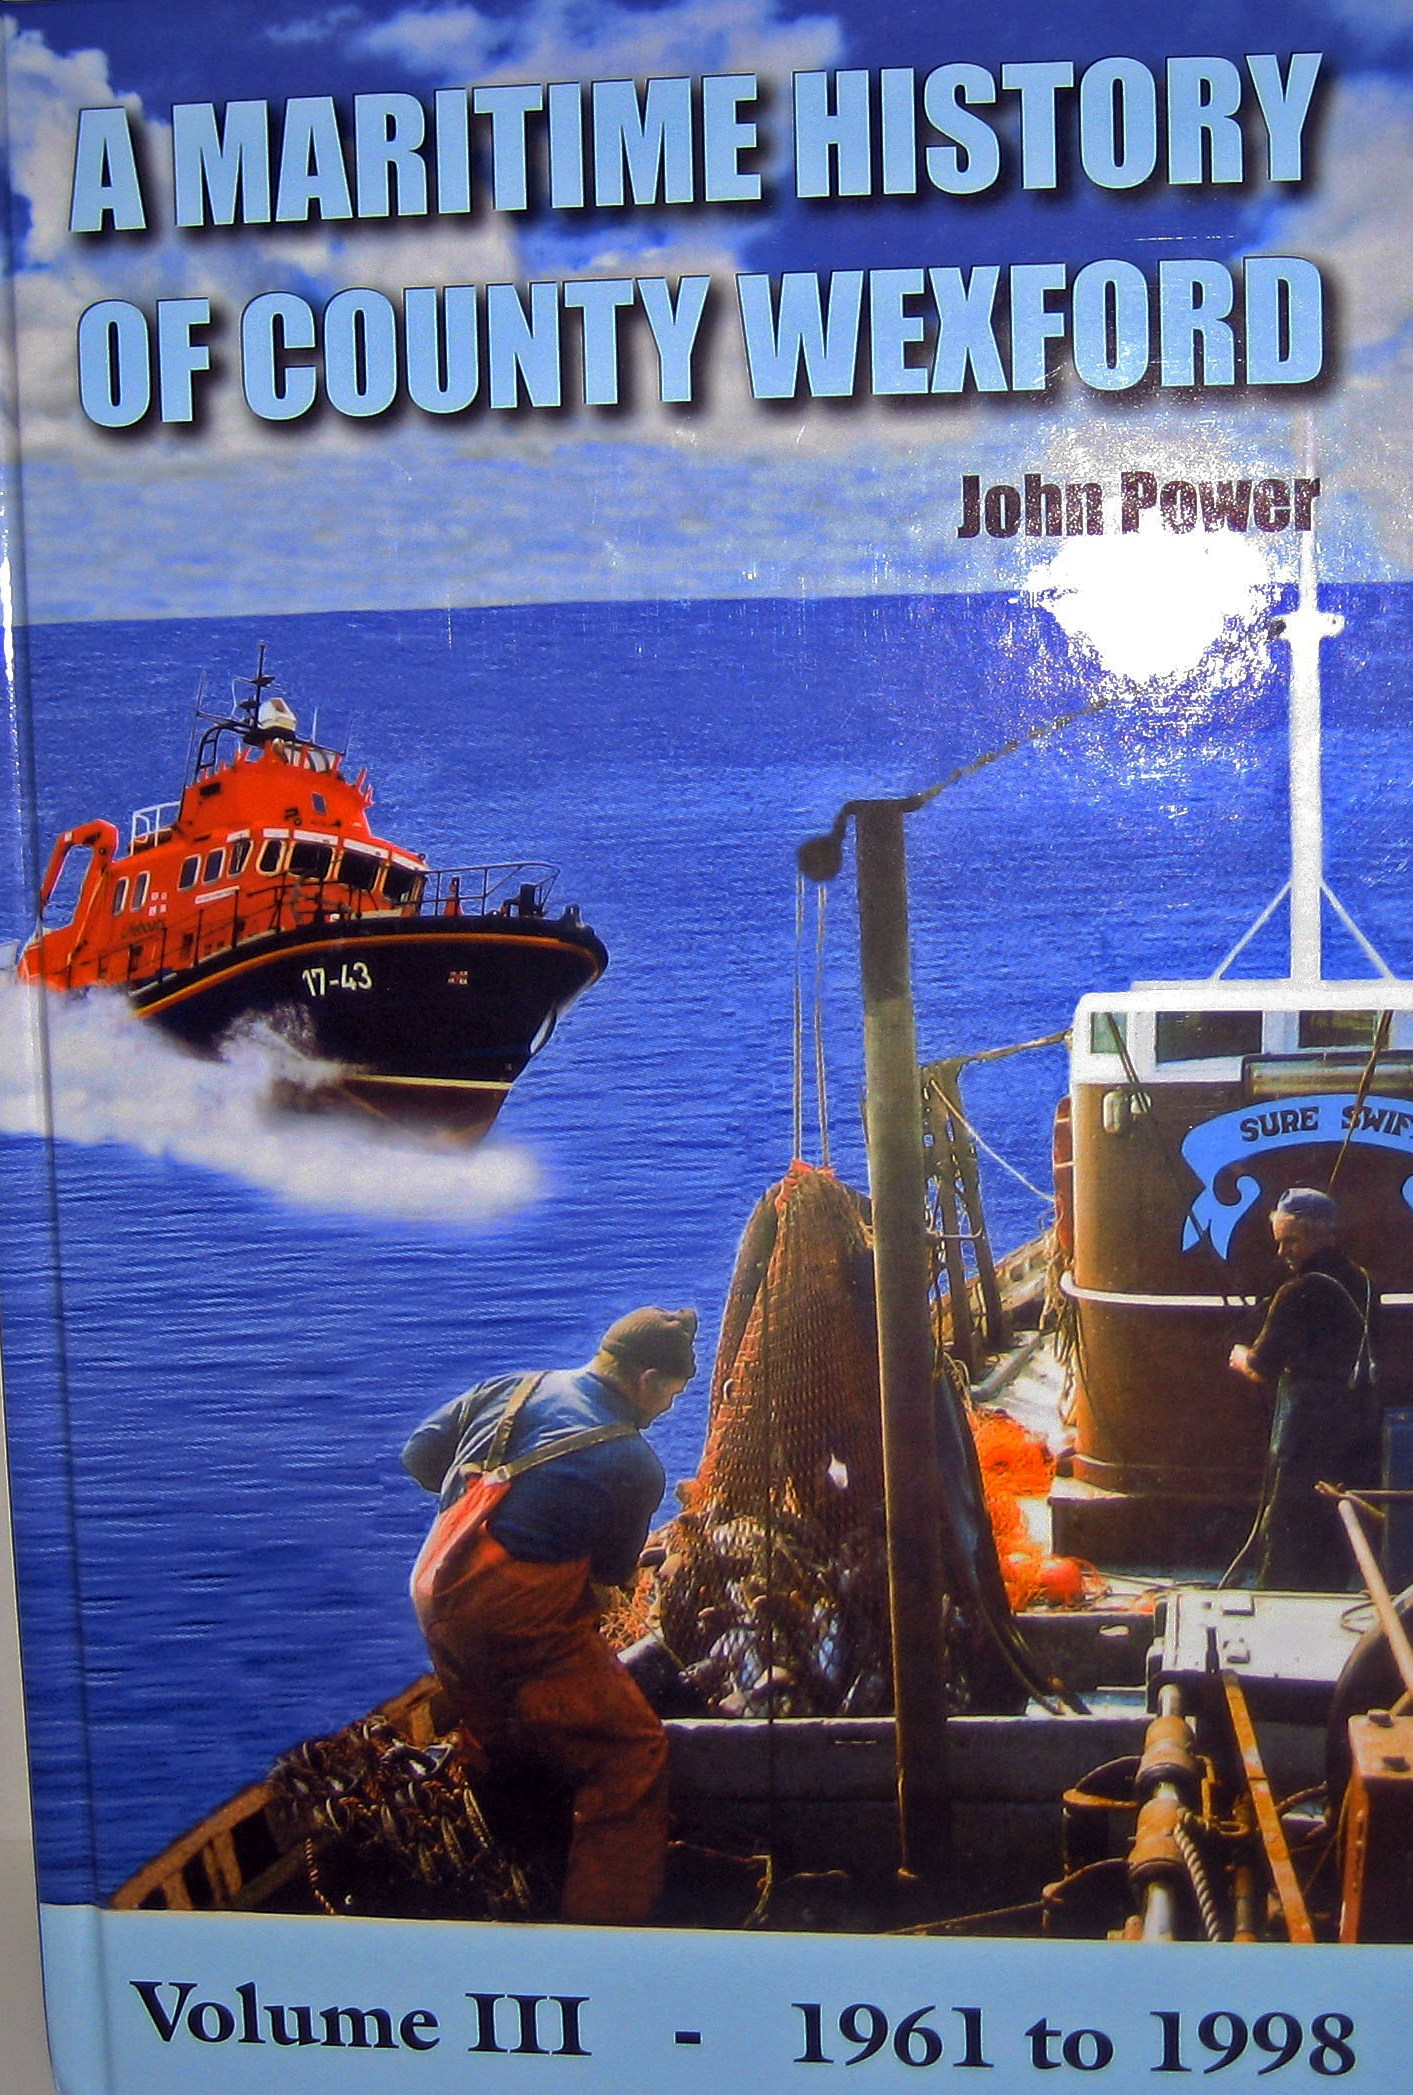 A Maritime History of County Wexford Vol 3